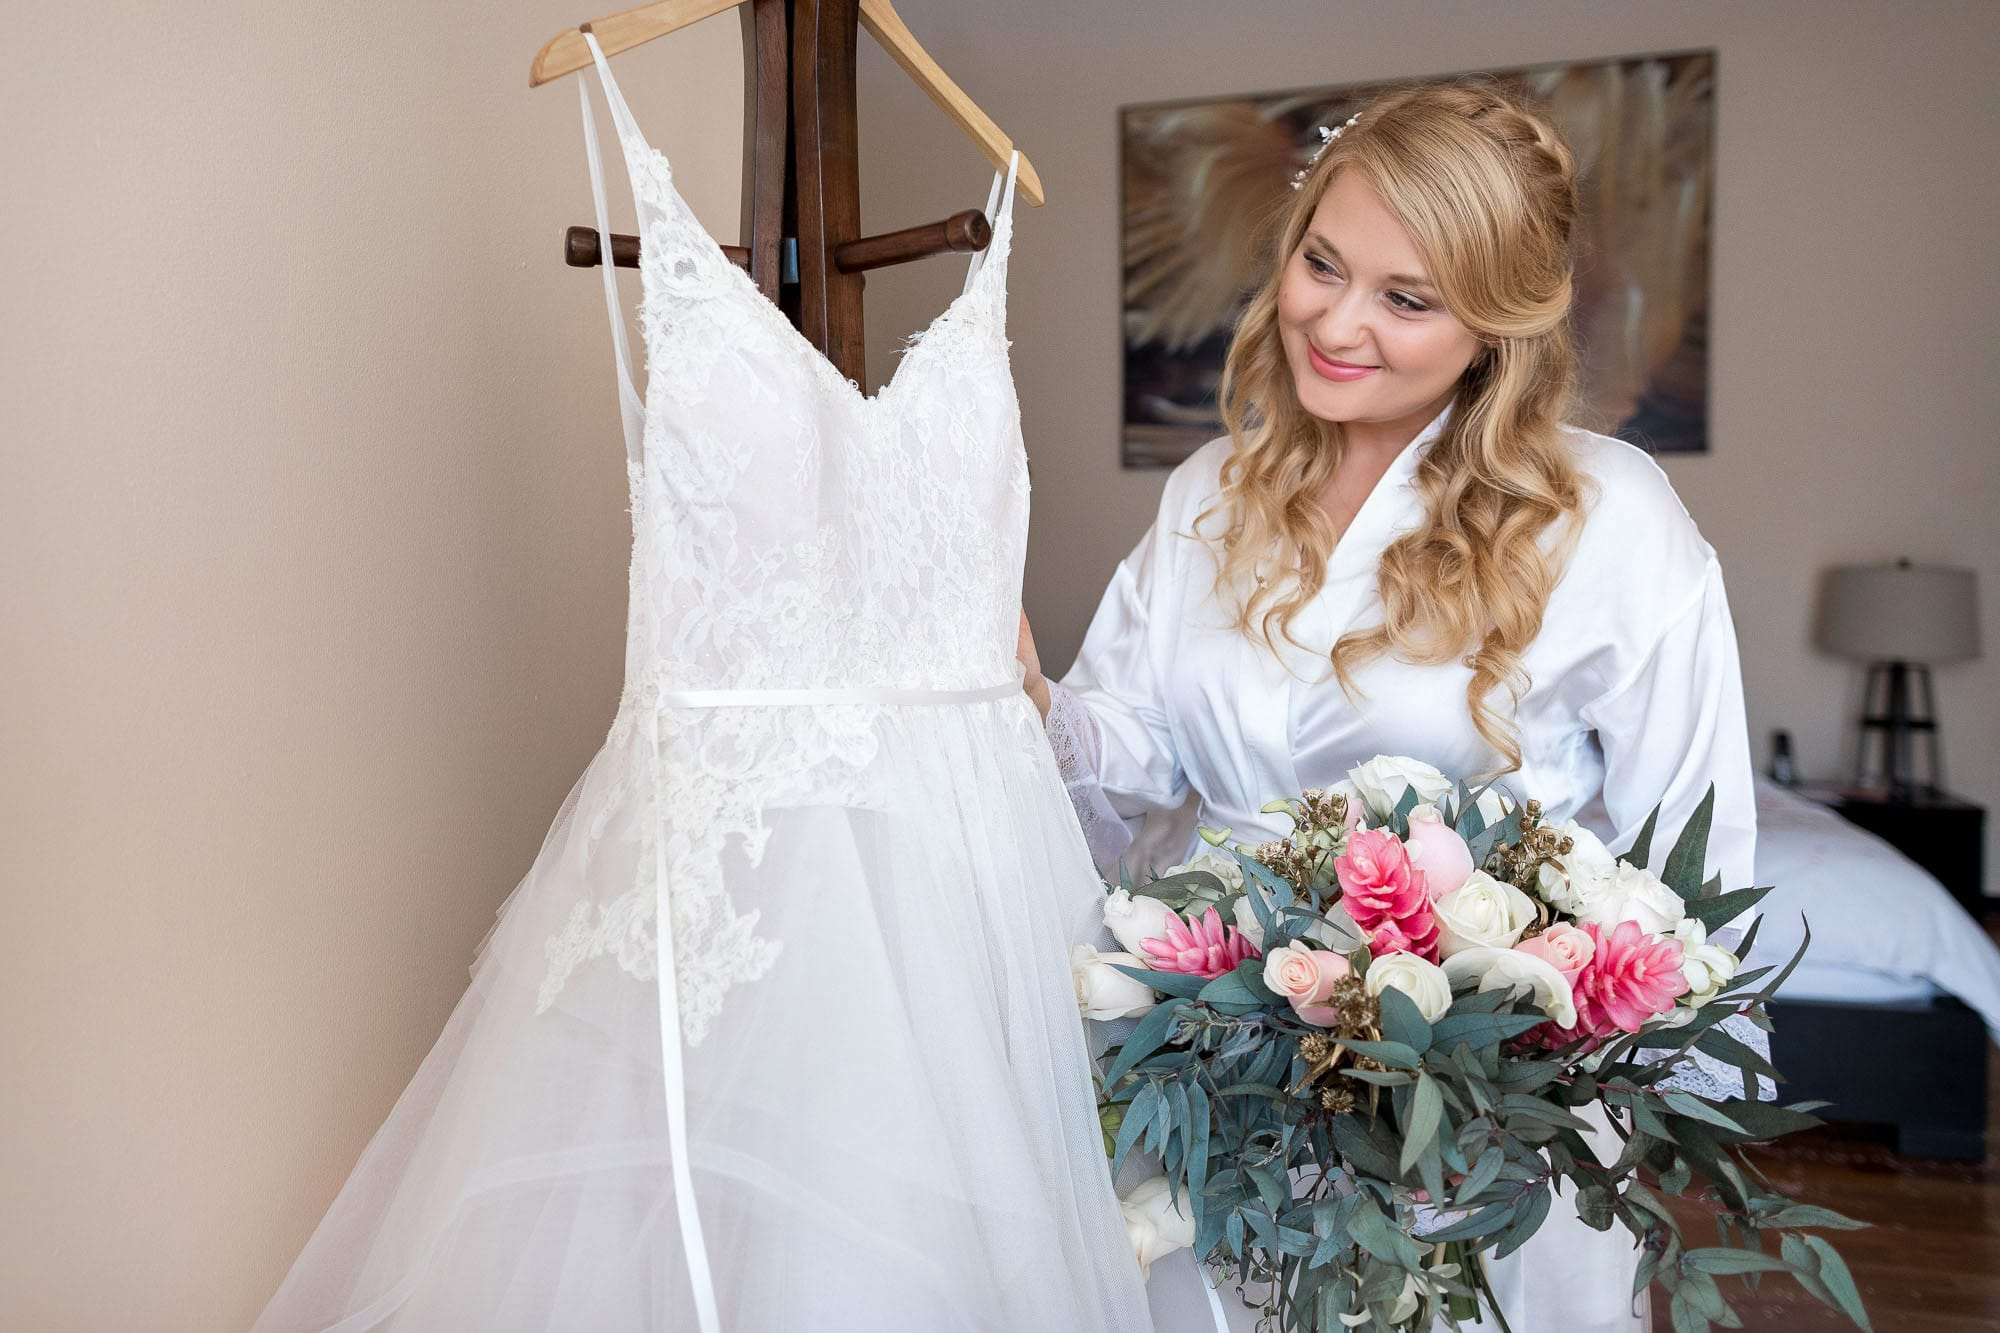 The bride with her dress and flowers